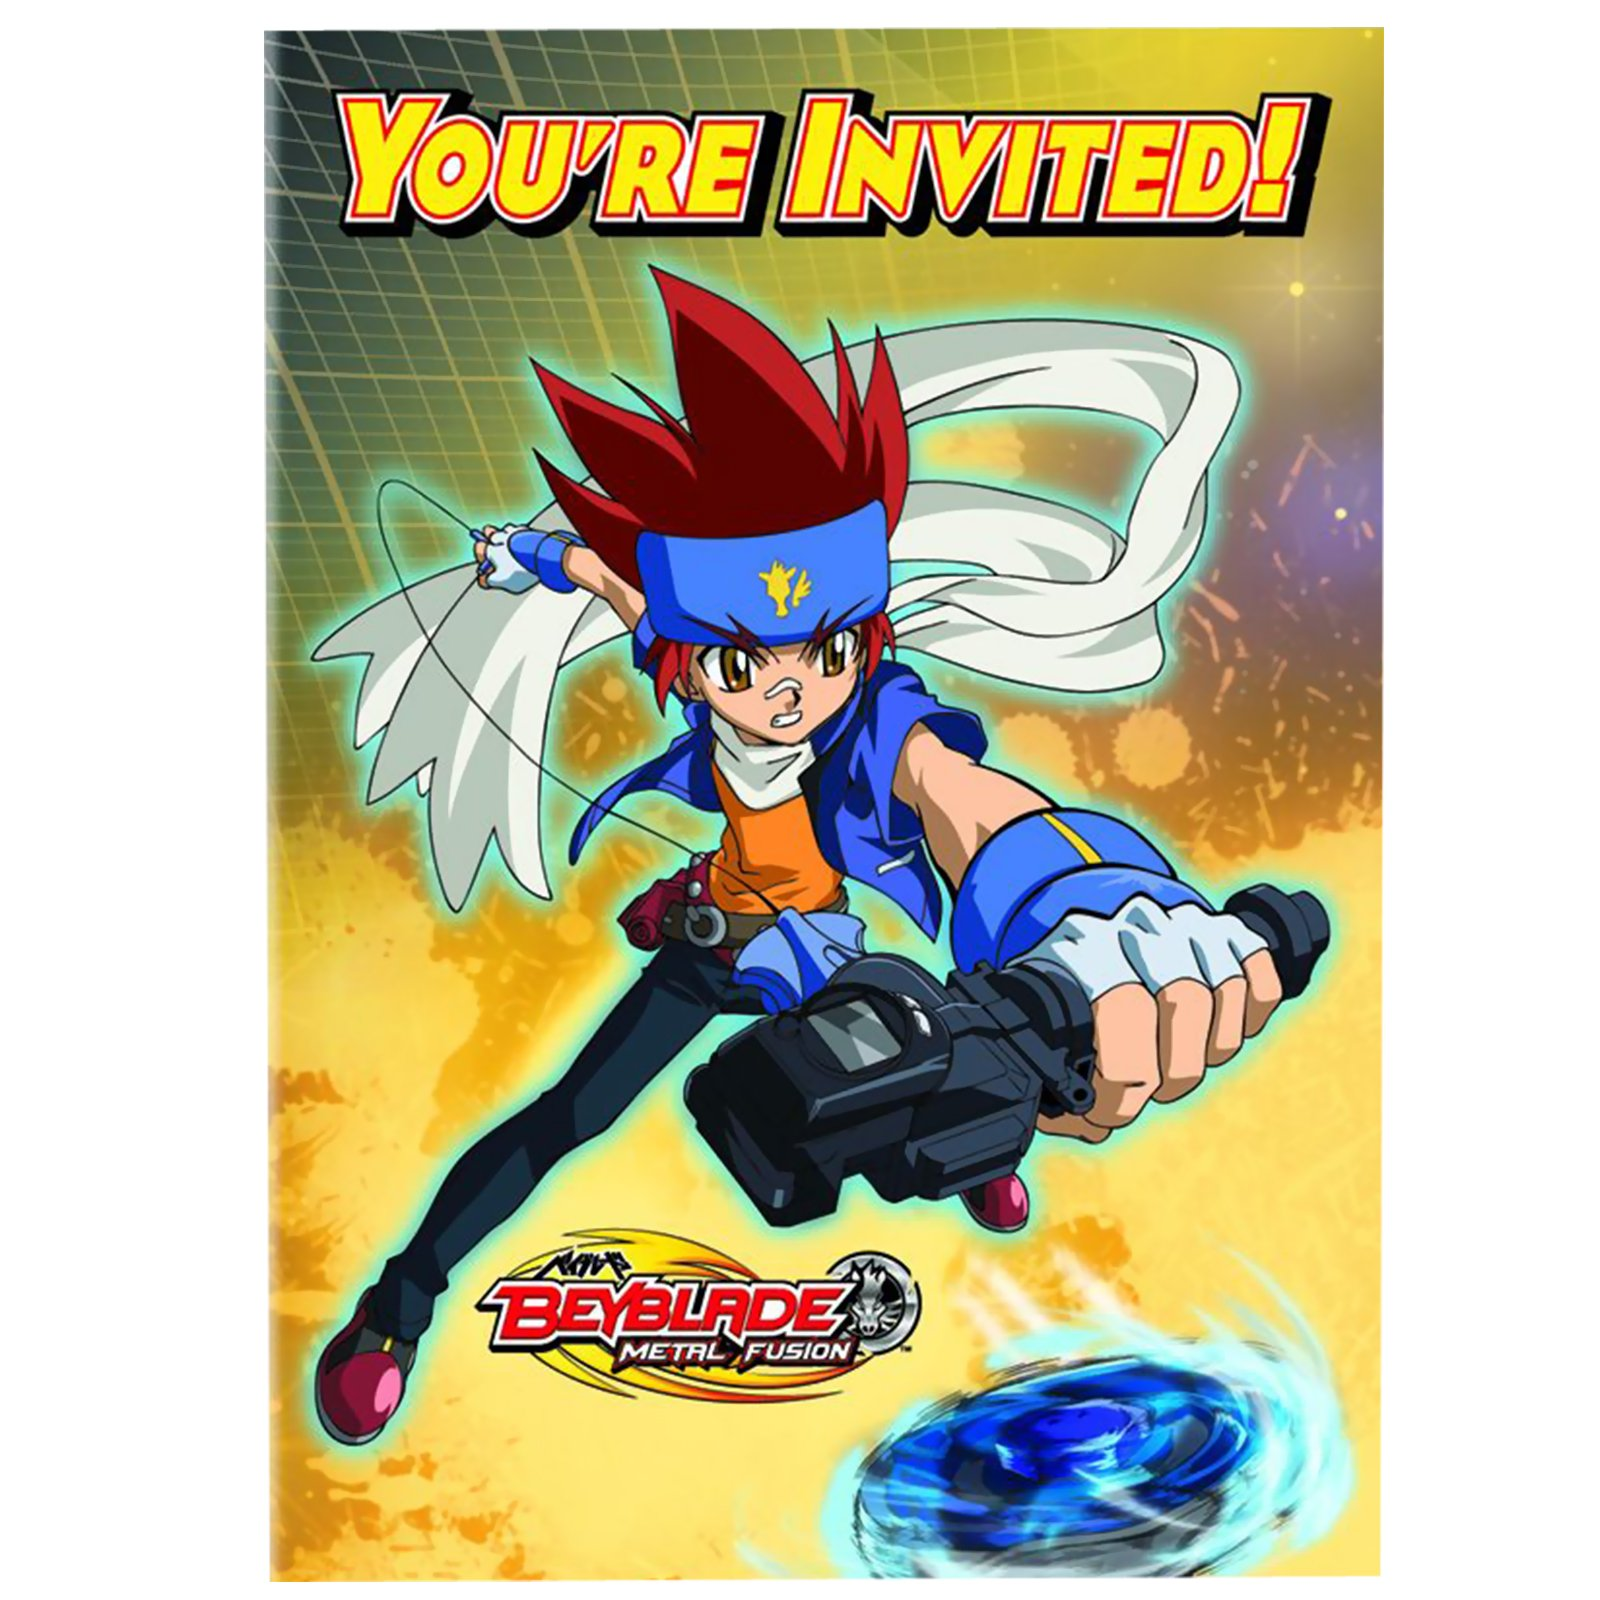 Beyblade Invitations (8 count)